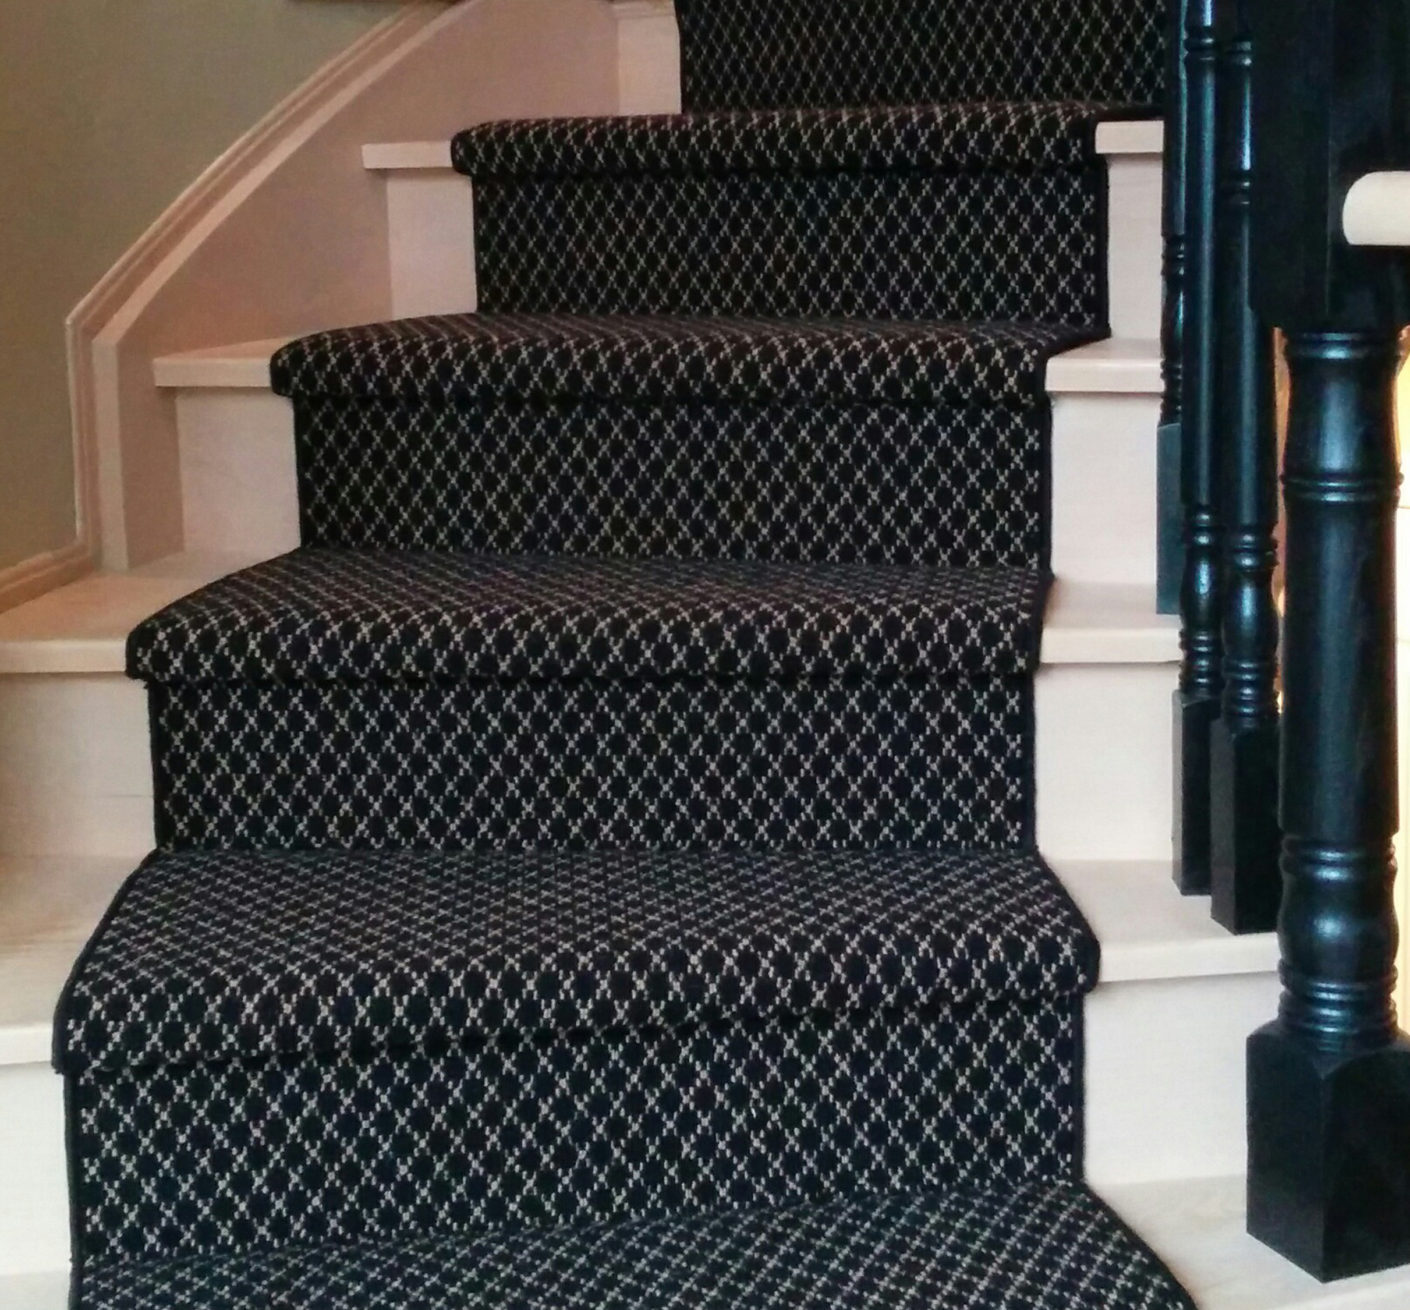 Black and White Wool Carpet Stair Runners on spiral Staircase in Toronto ideas, Wool Carpet Runner King City